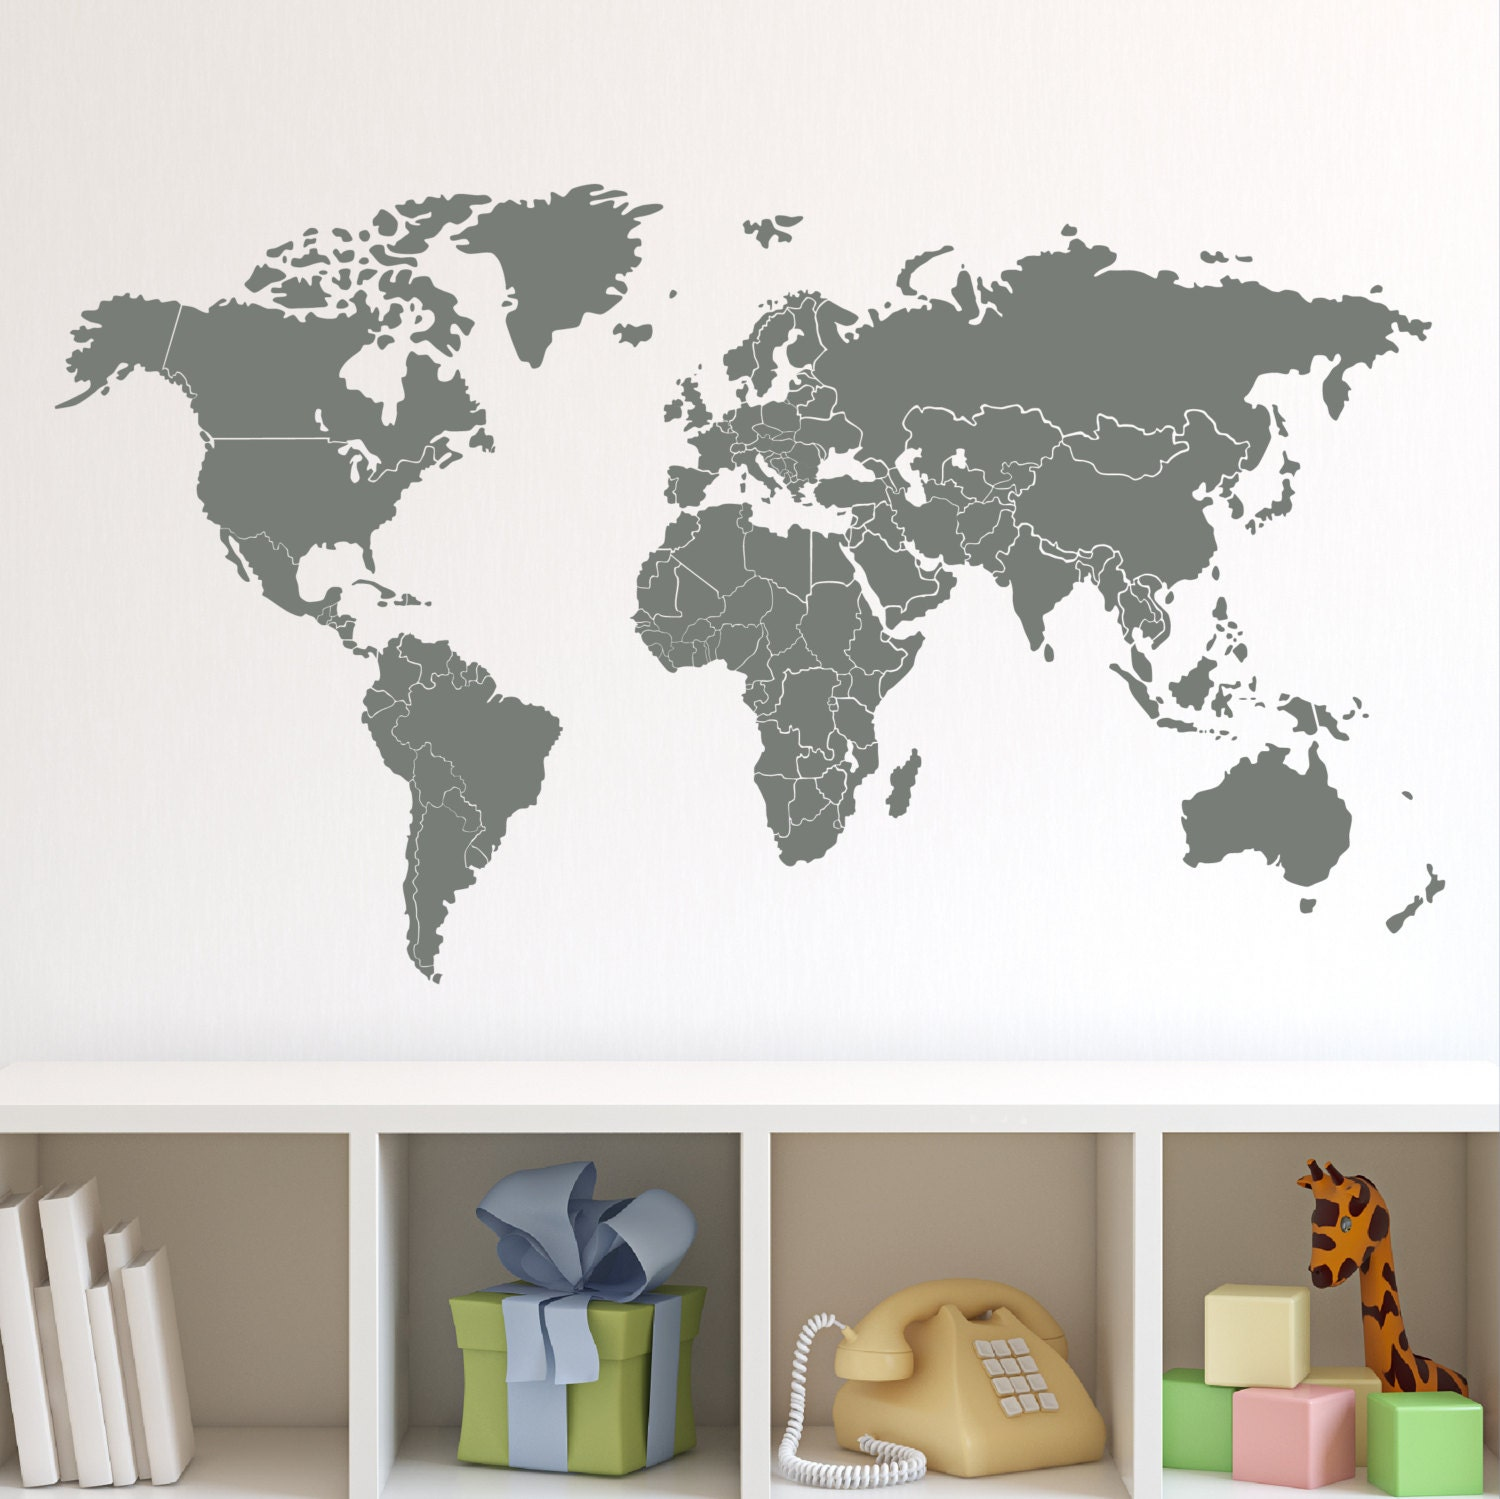 Wall Decor Stickers World Map : World map with countries borders wall decal by zapoart on etsy